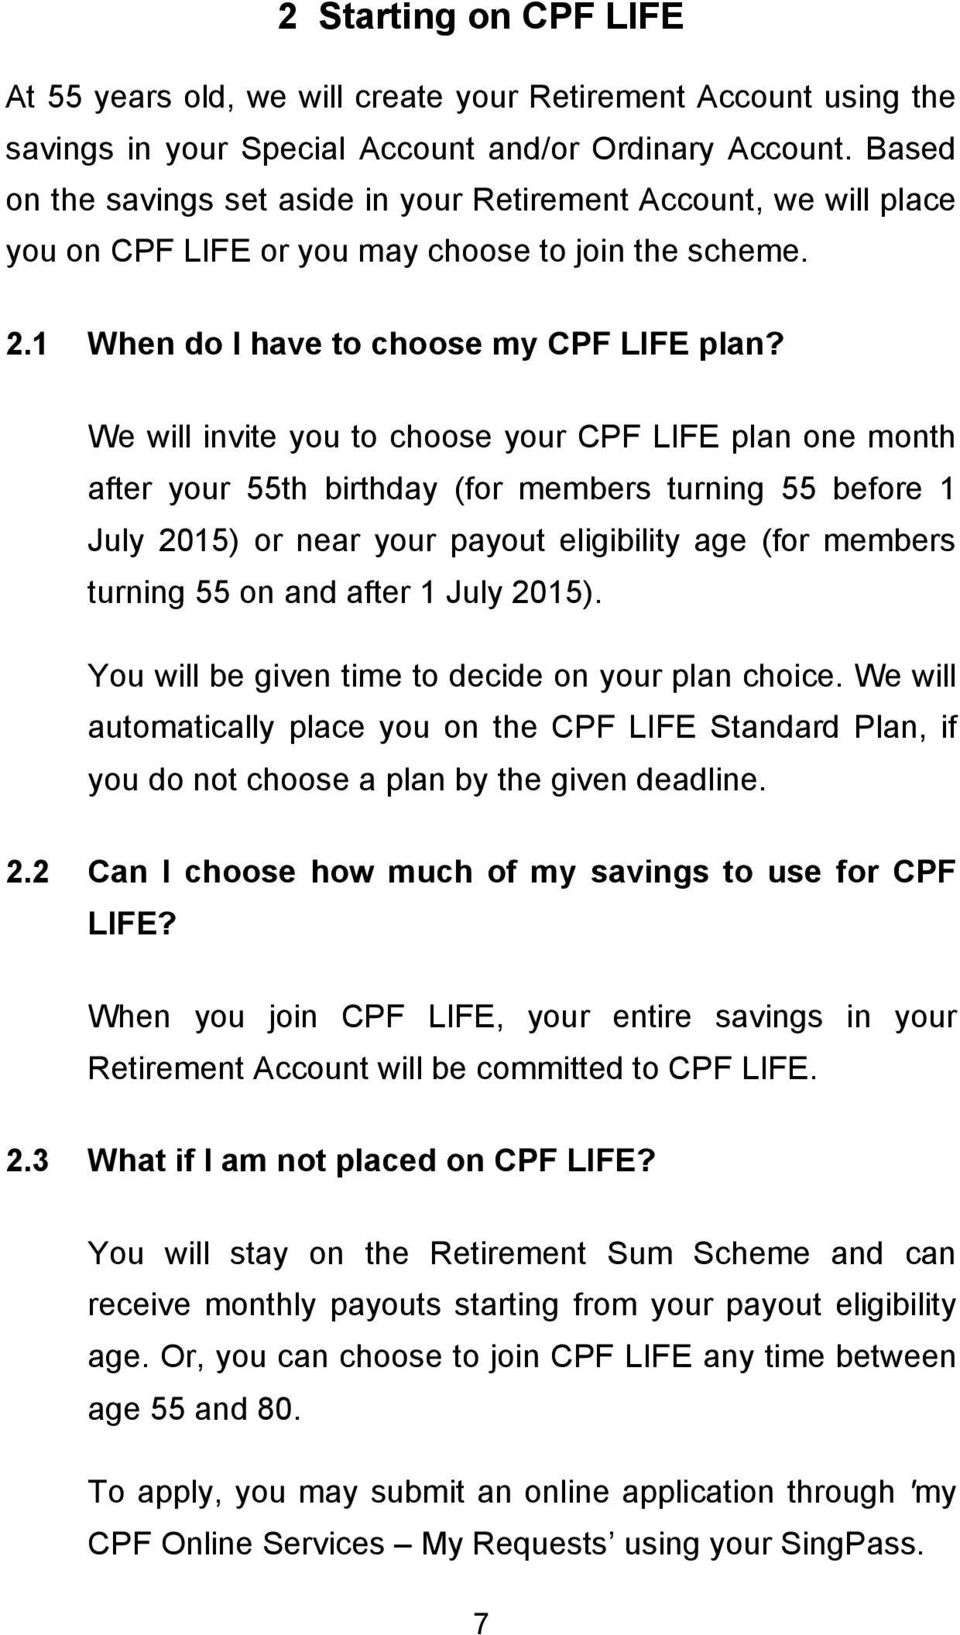 We will invite you to choose your CPF LIFE plan one month after your 55th birthday (for members turning 55 before 1 July 2015) or near your payout eligibility age (for members turning 55 on and after